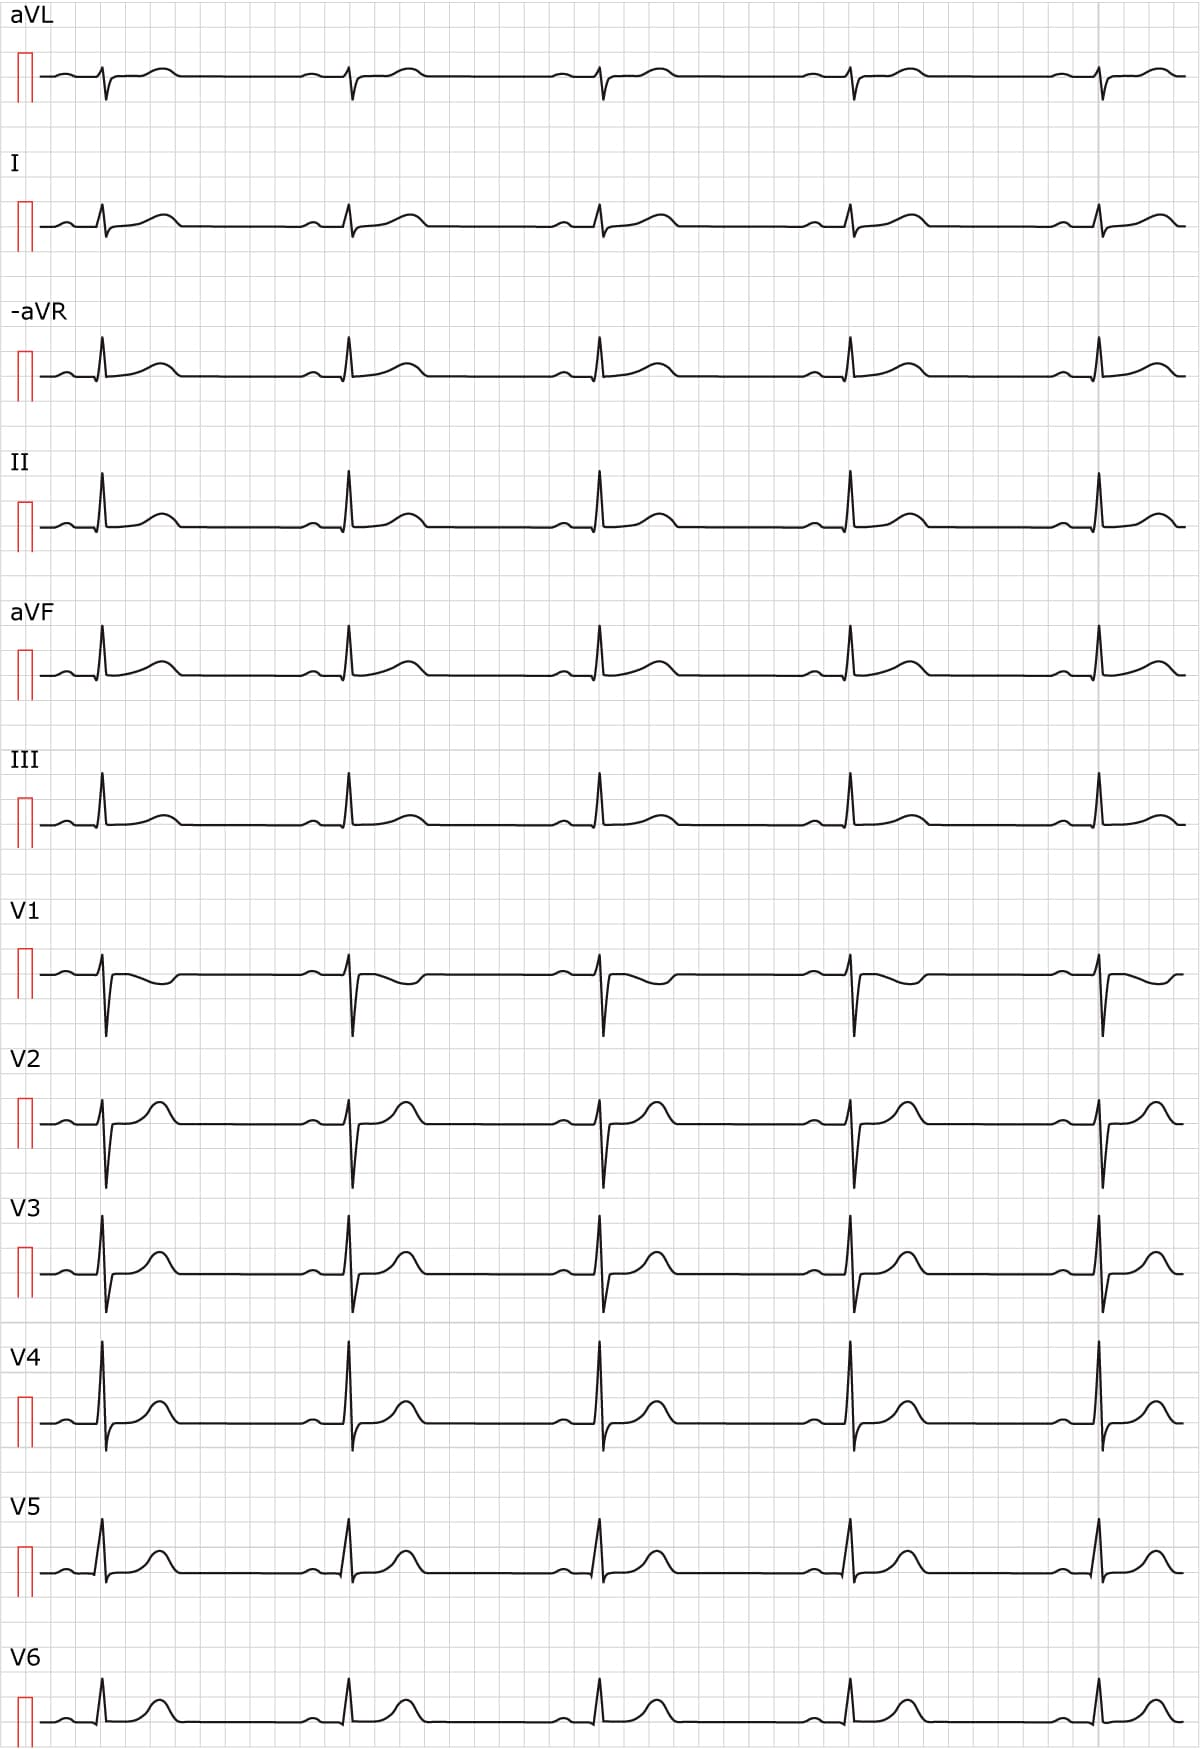 Figure 2. Sinus rhythm. Paper speed 50 mm/s.